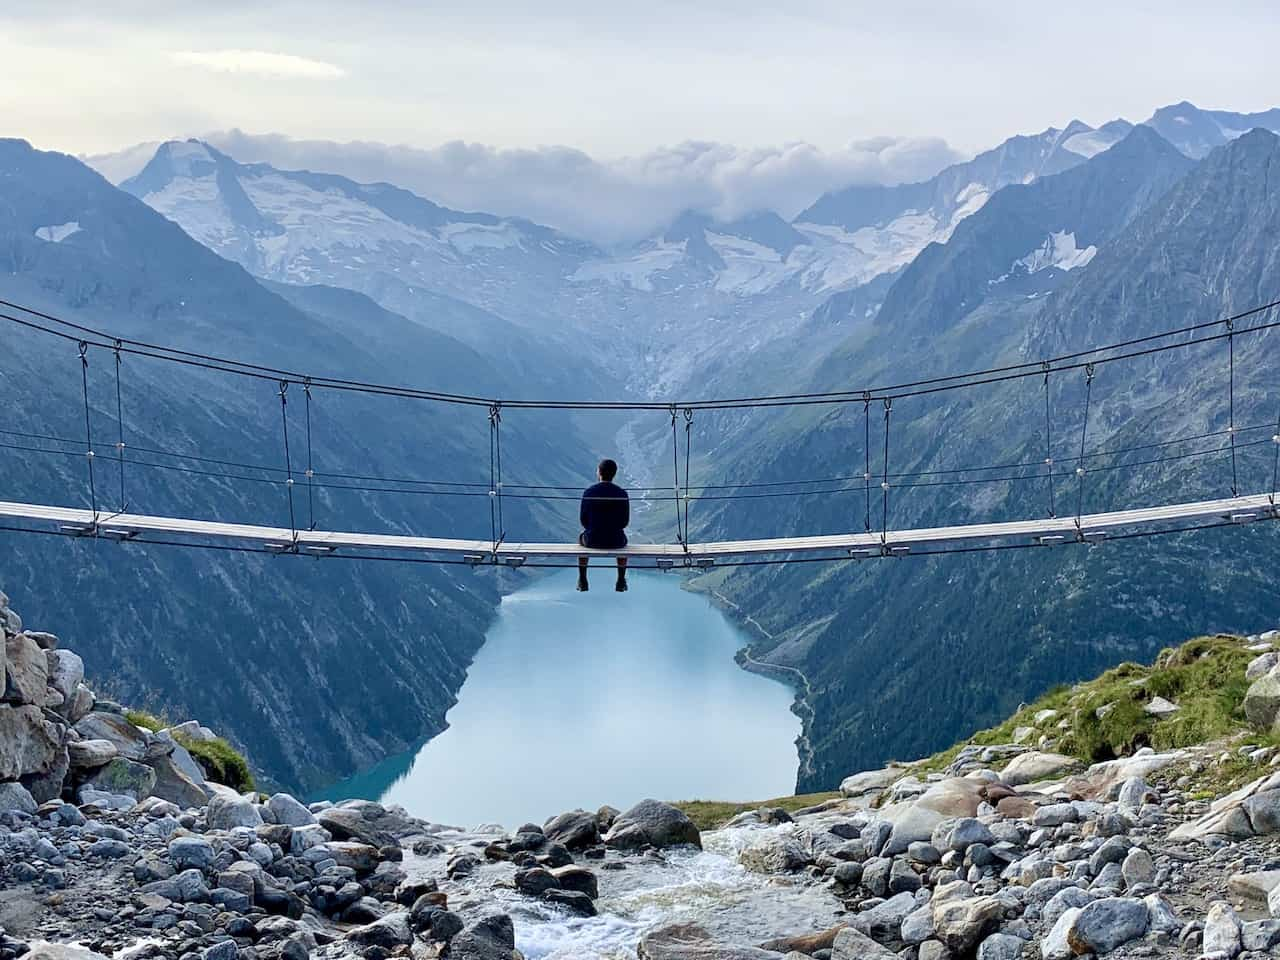 Olpererhütte Bridge Hike